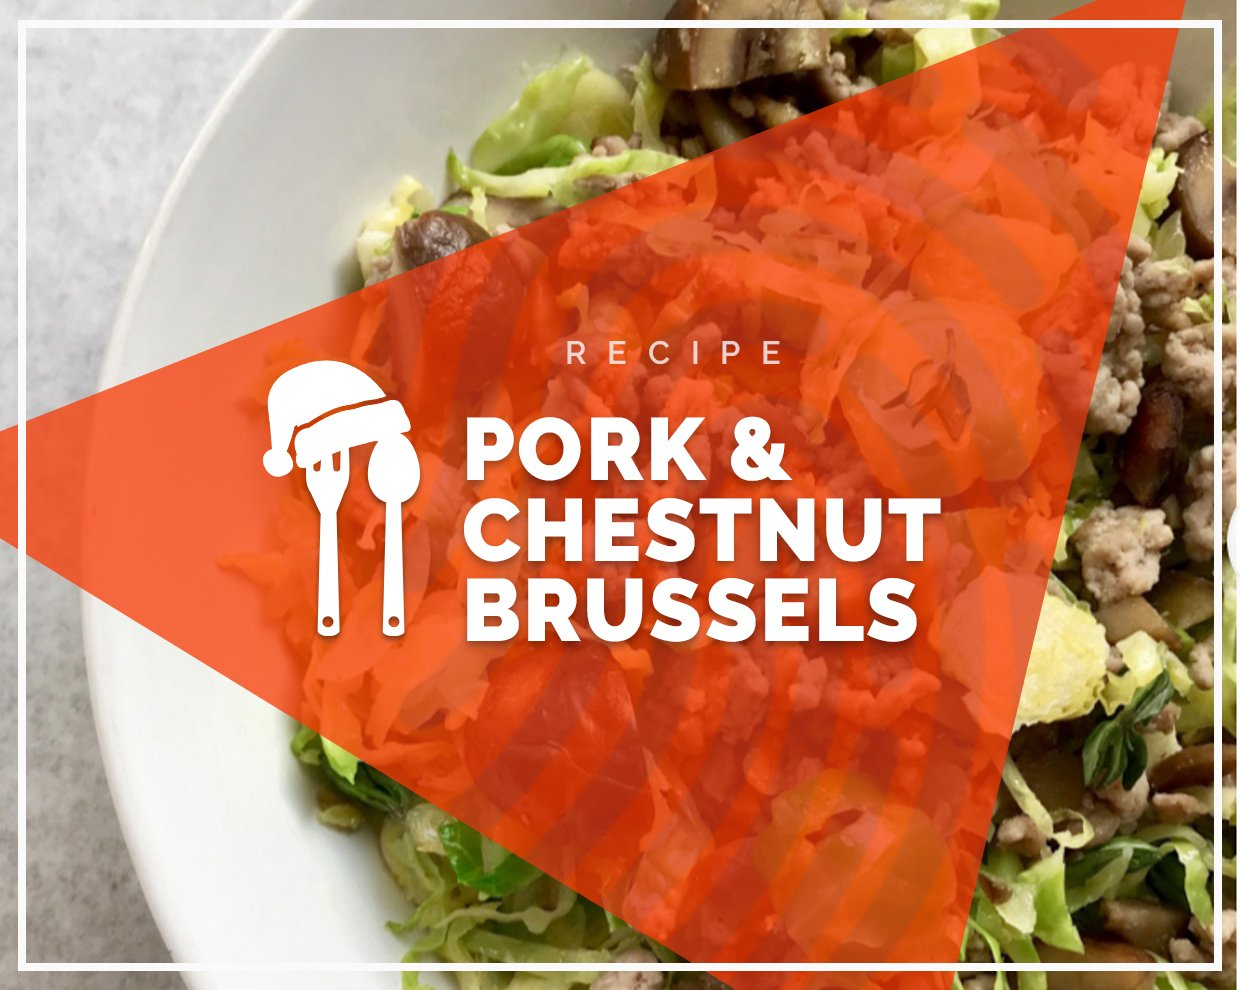 Pork and chestnut brussels